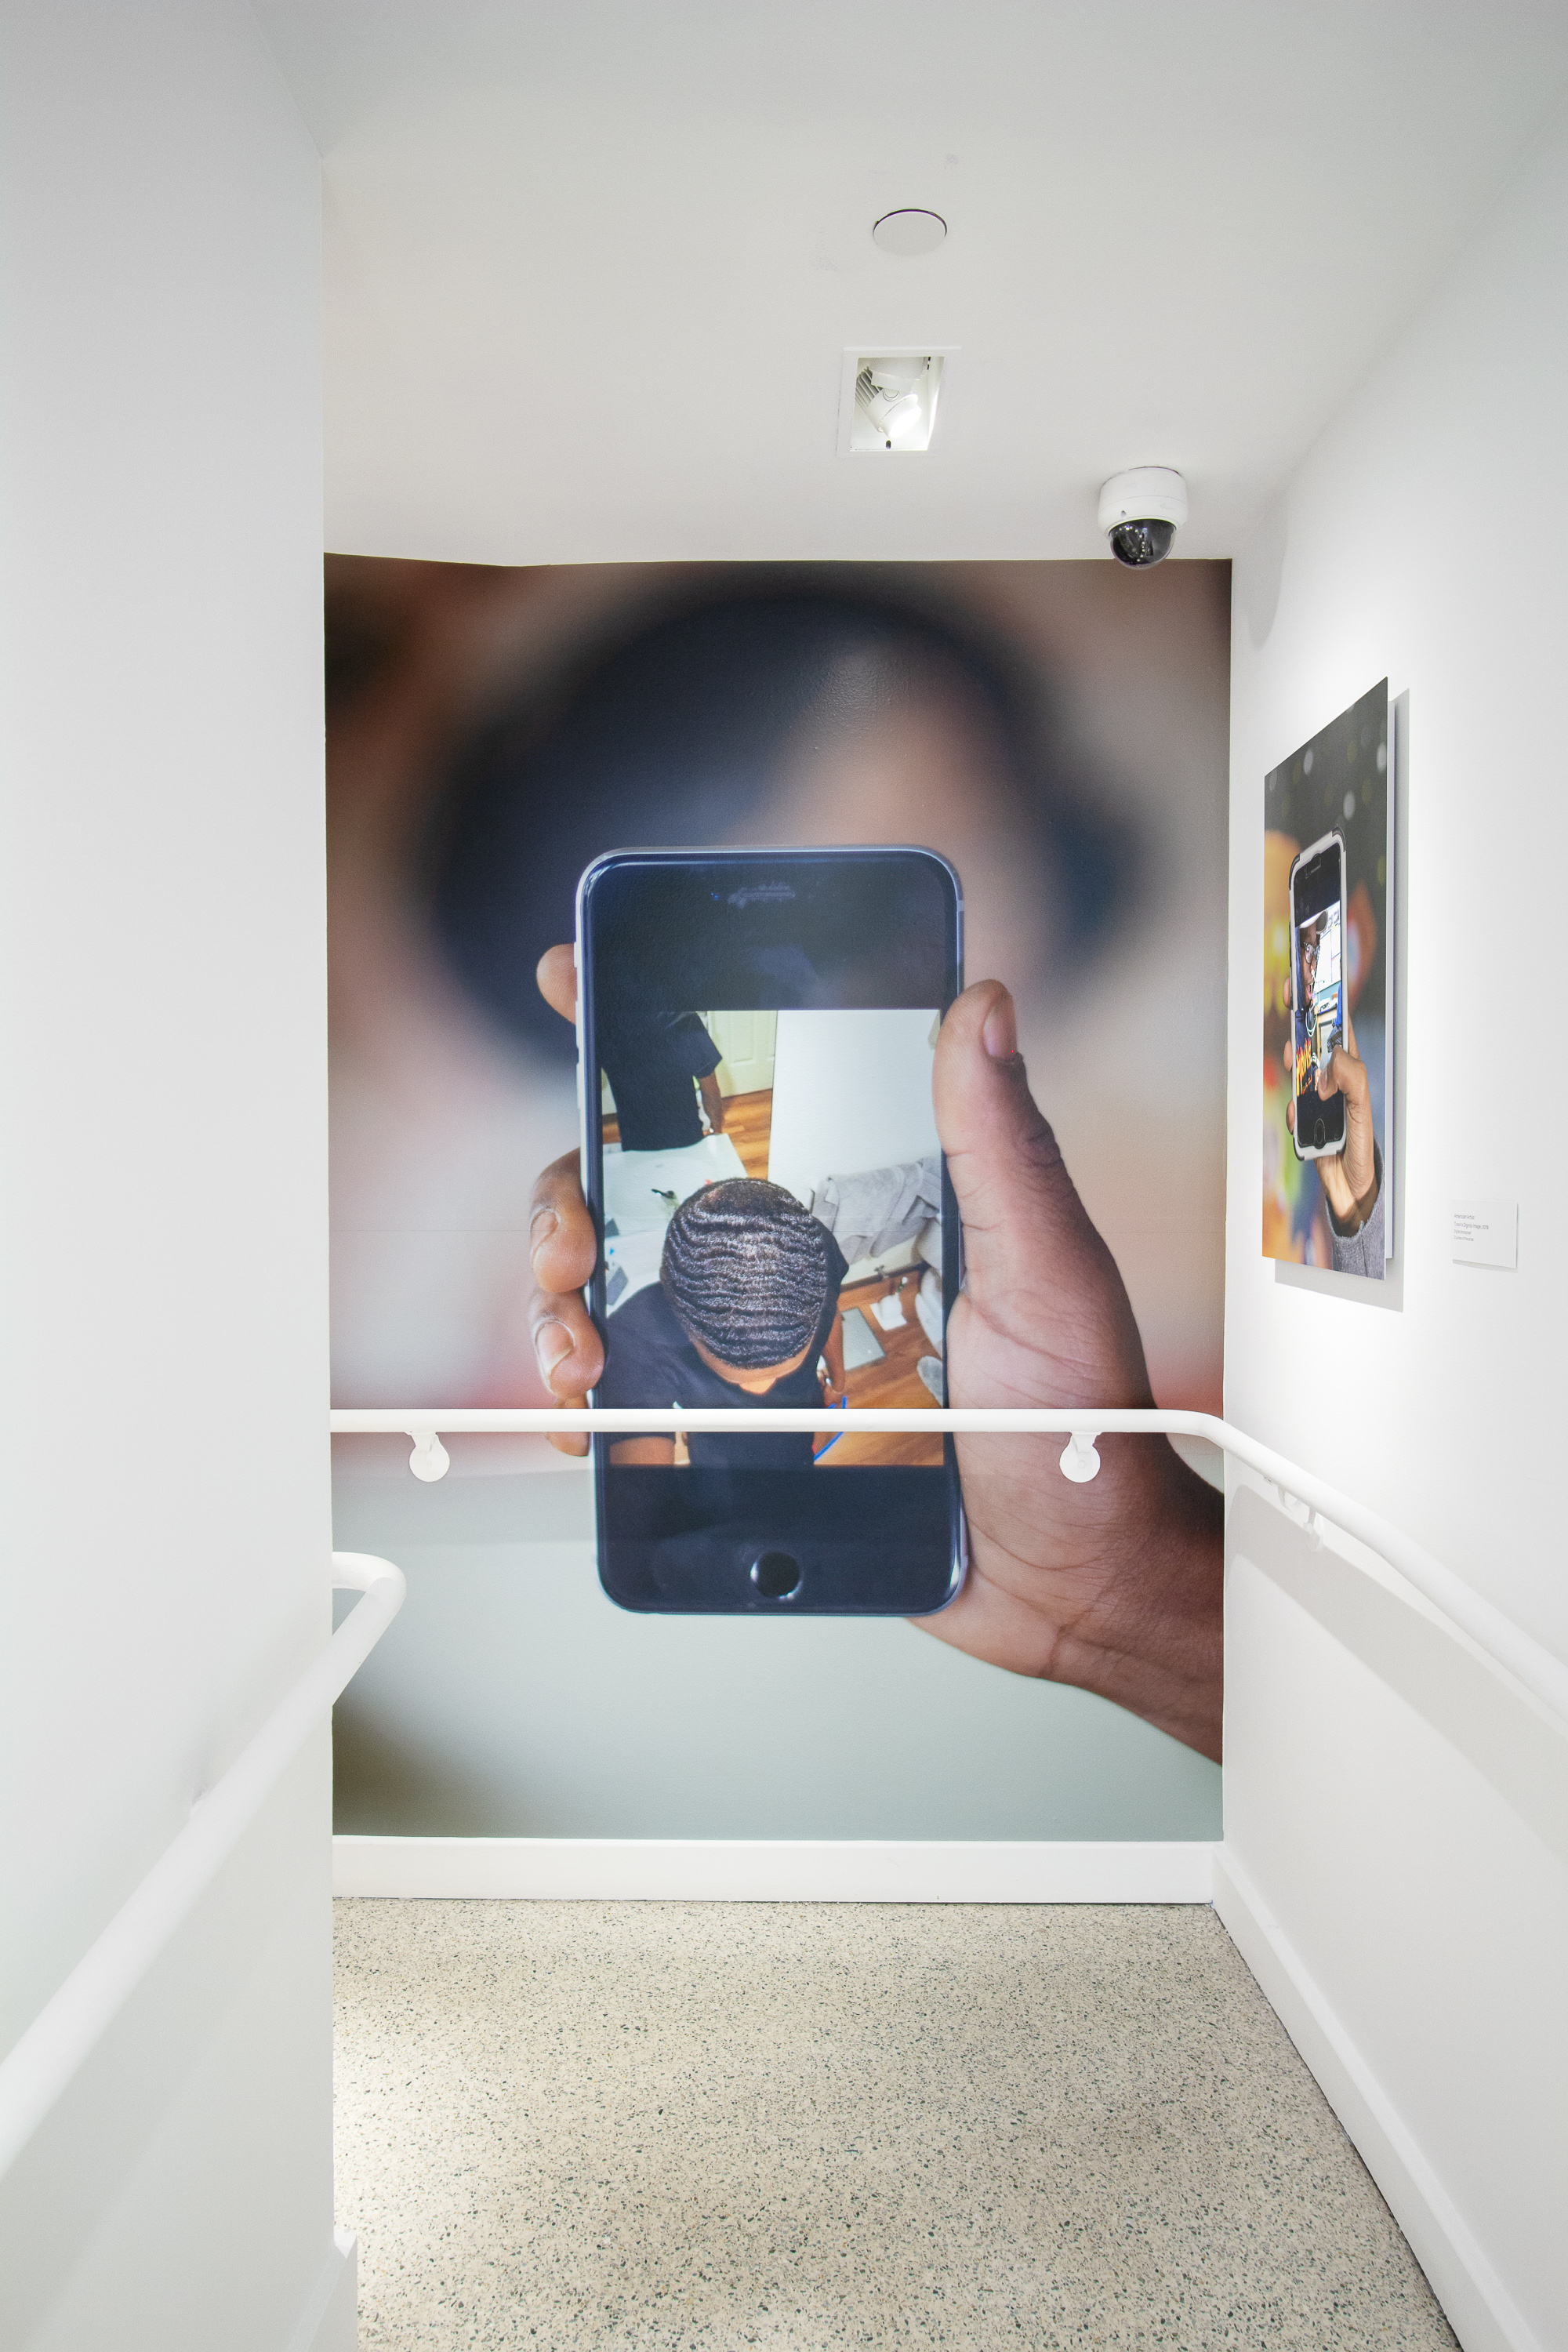 Dignity Images: Bayview-Hunters Point  (Installation view, Museum of African Diaspora, San Francisco, CA), 2019